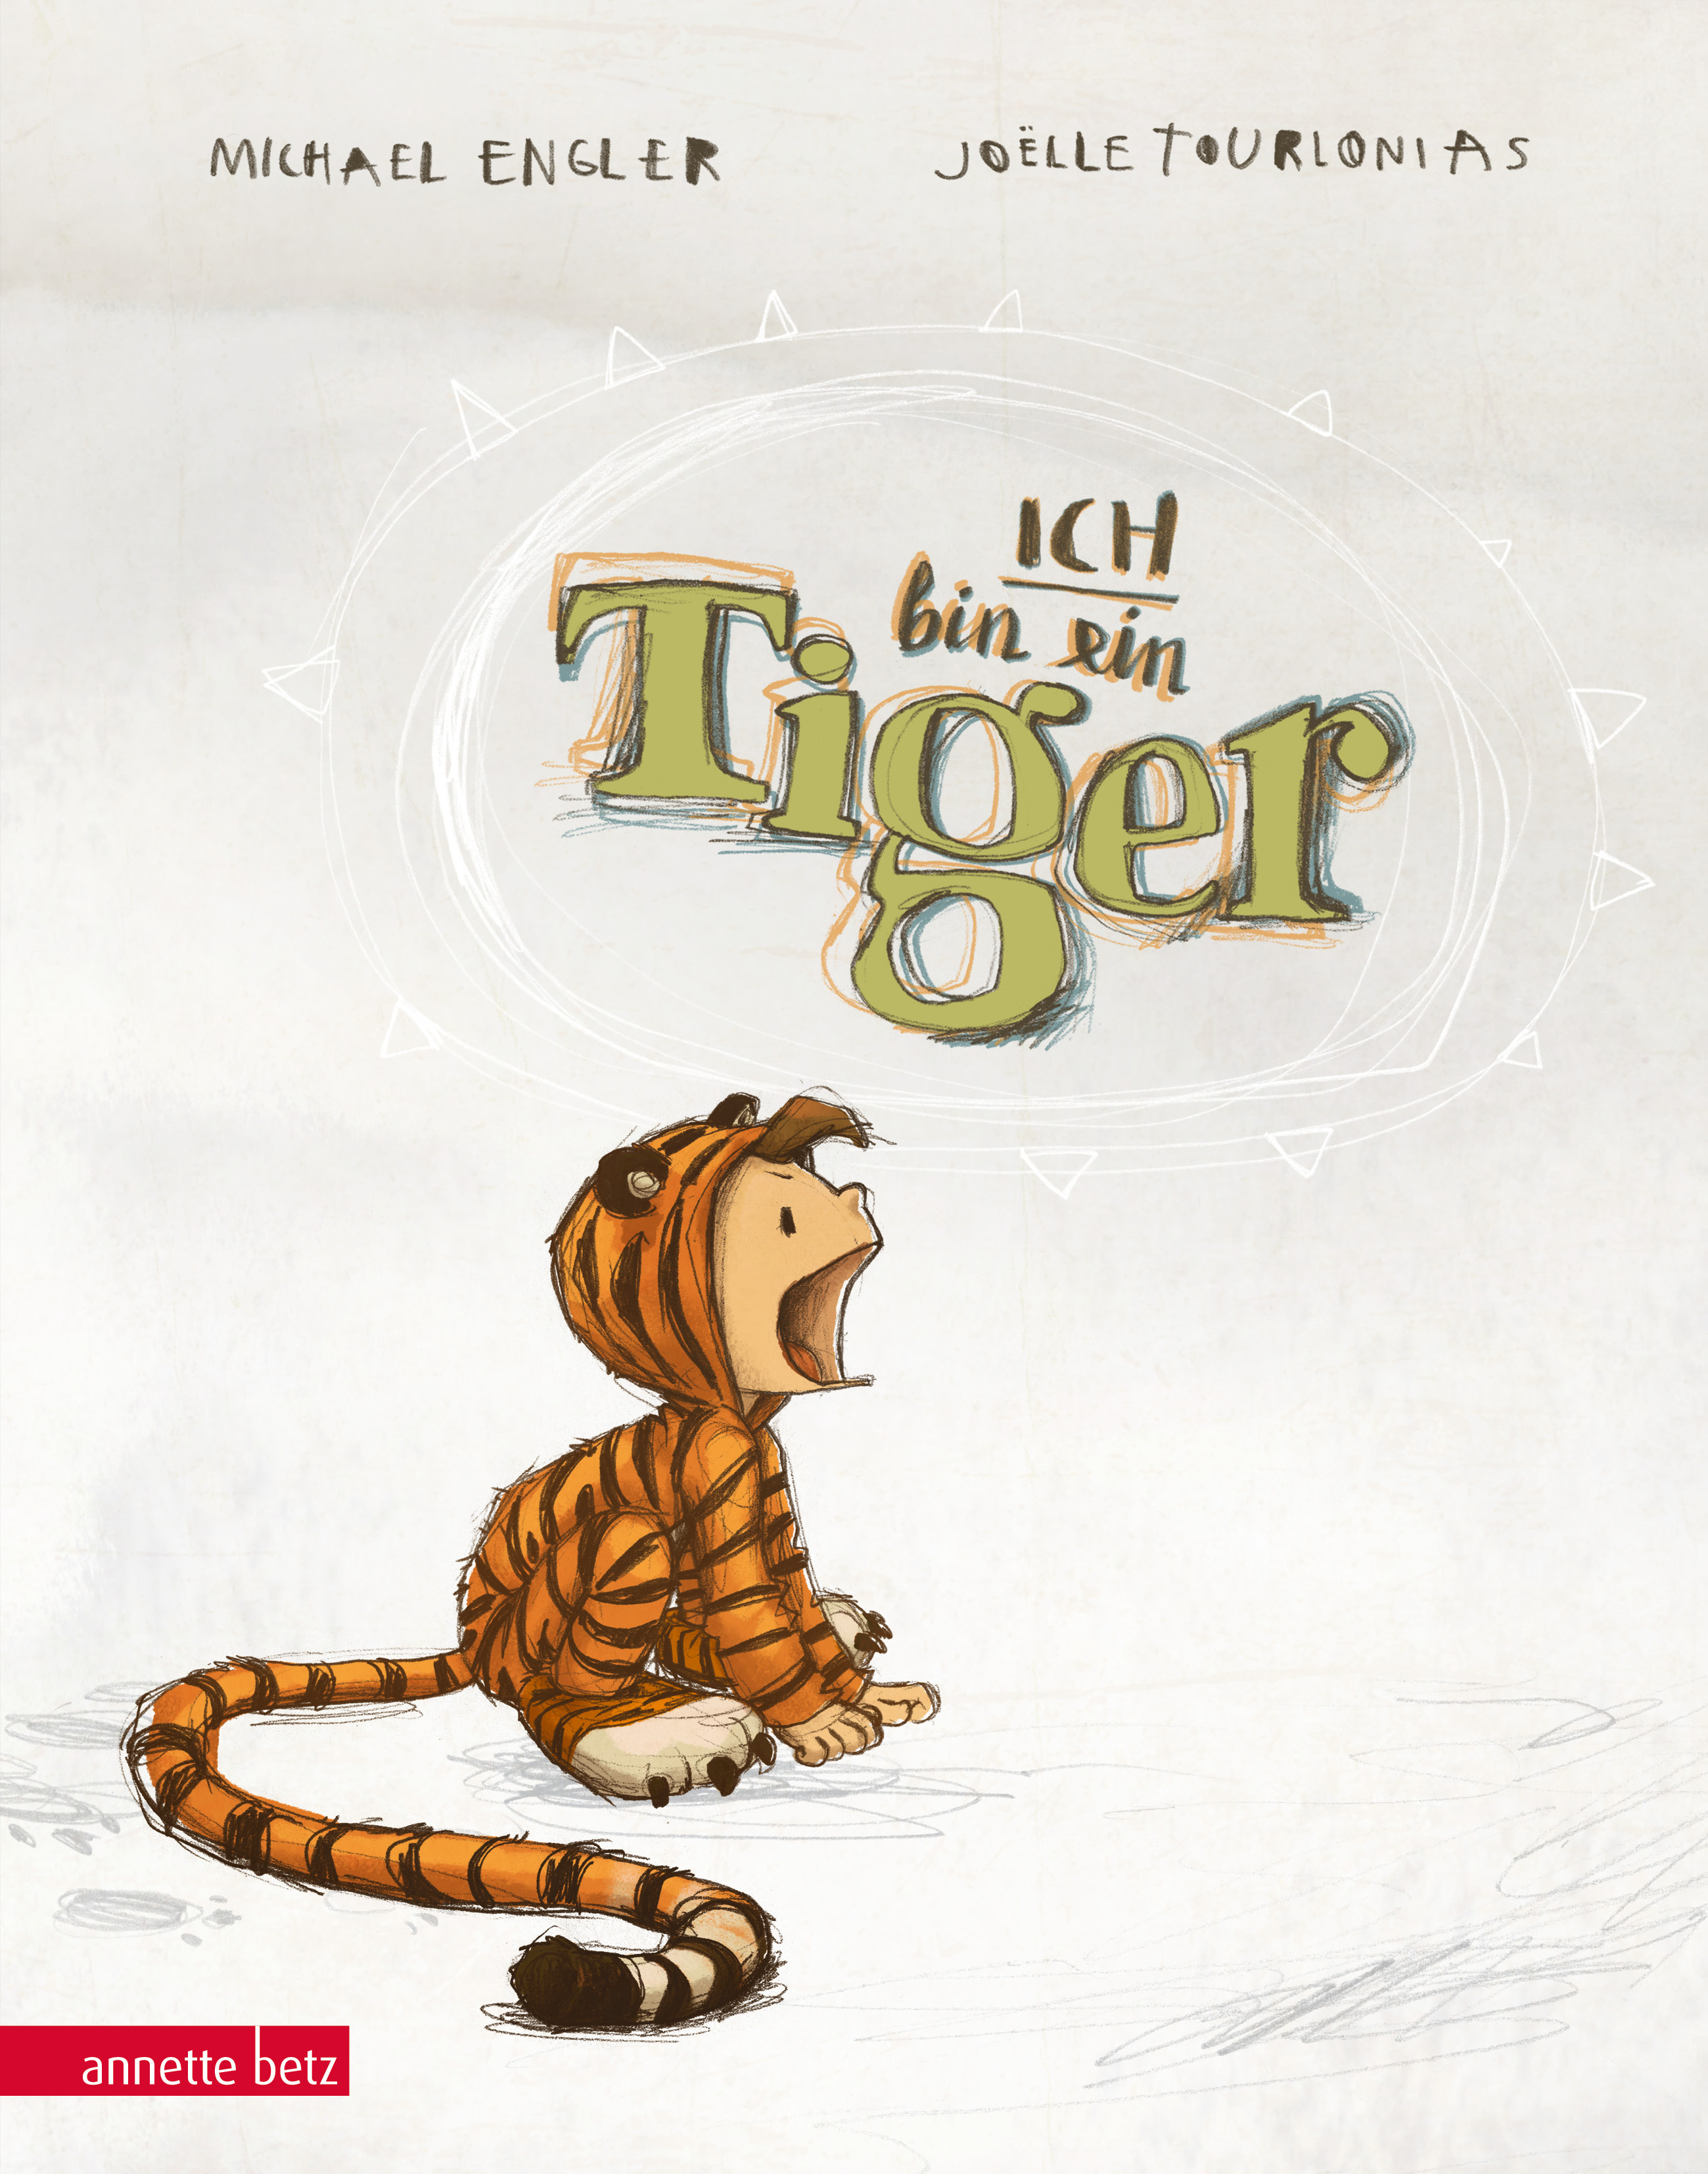 One of my new favourites – I'm a Tiger